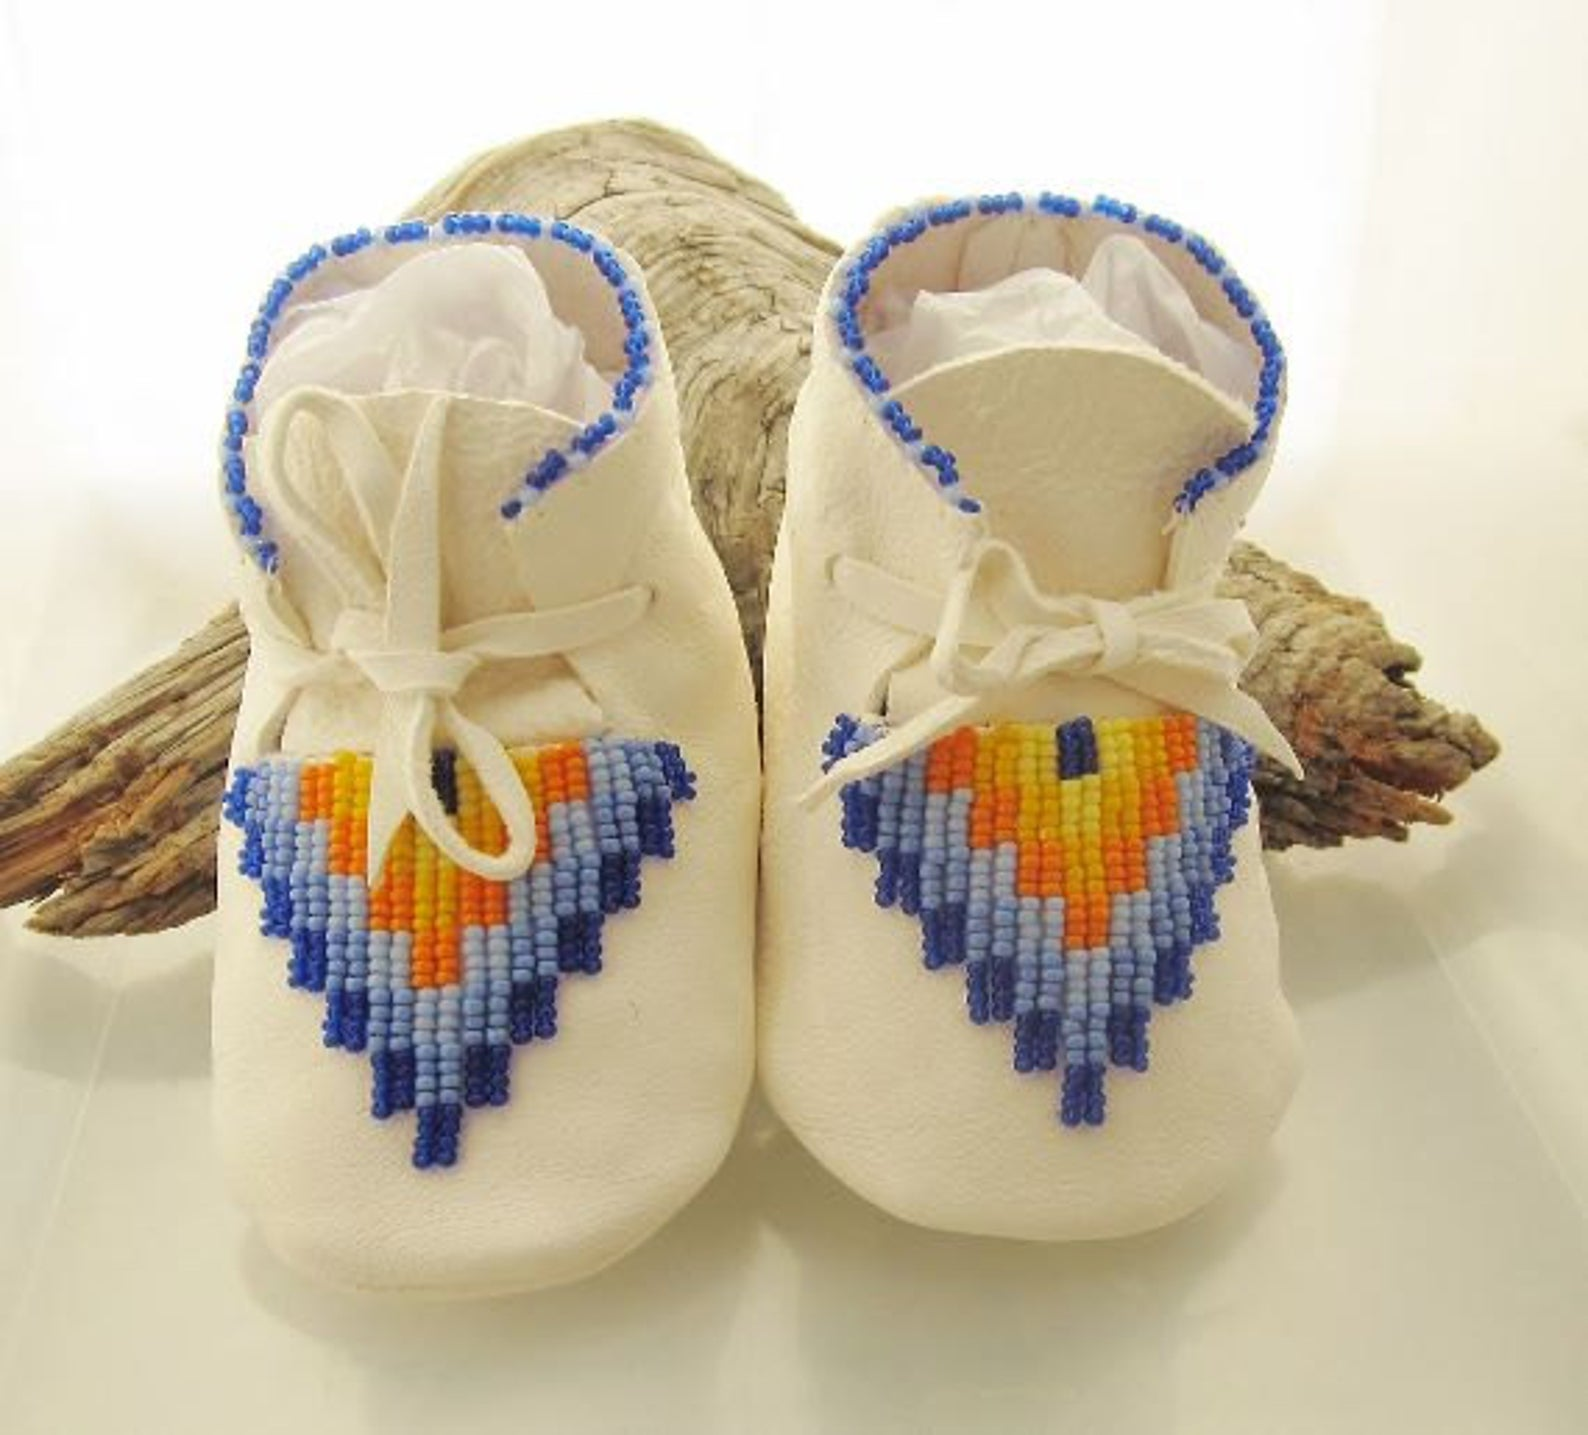 Personalized Keepsake Baby Shower Gift. Native American beaded baby boy moccasins. Blue and yellow beaded infant shoes. Newborn crib booties